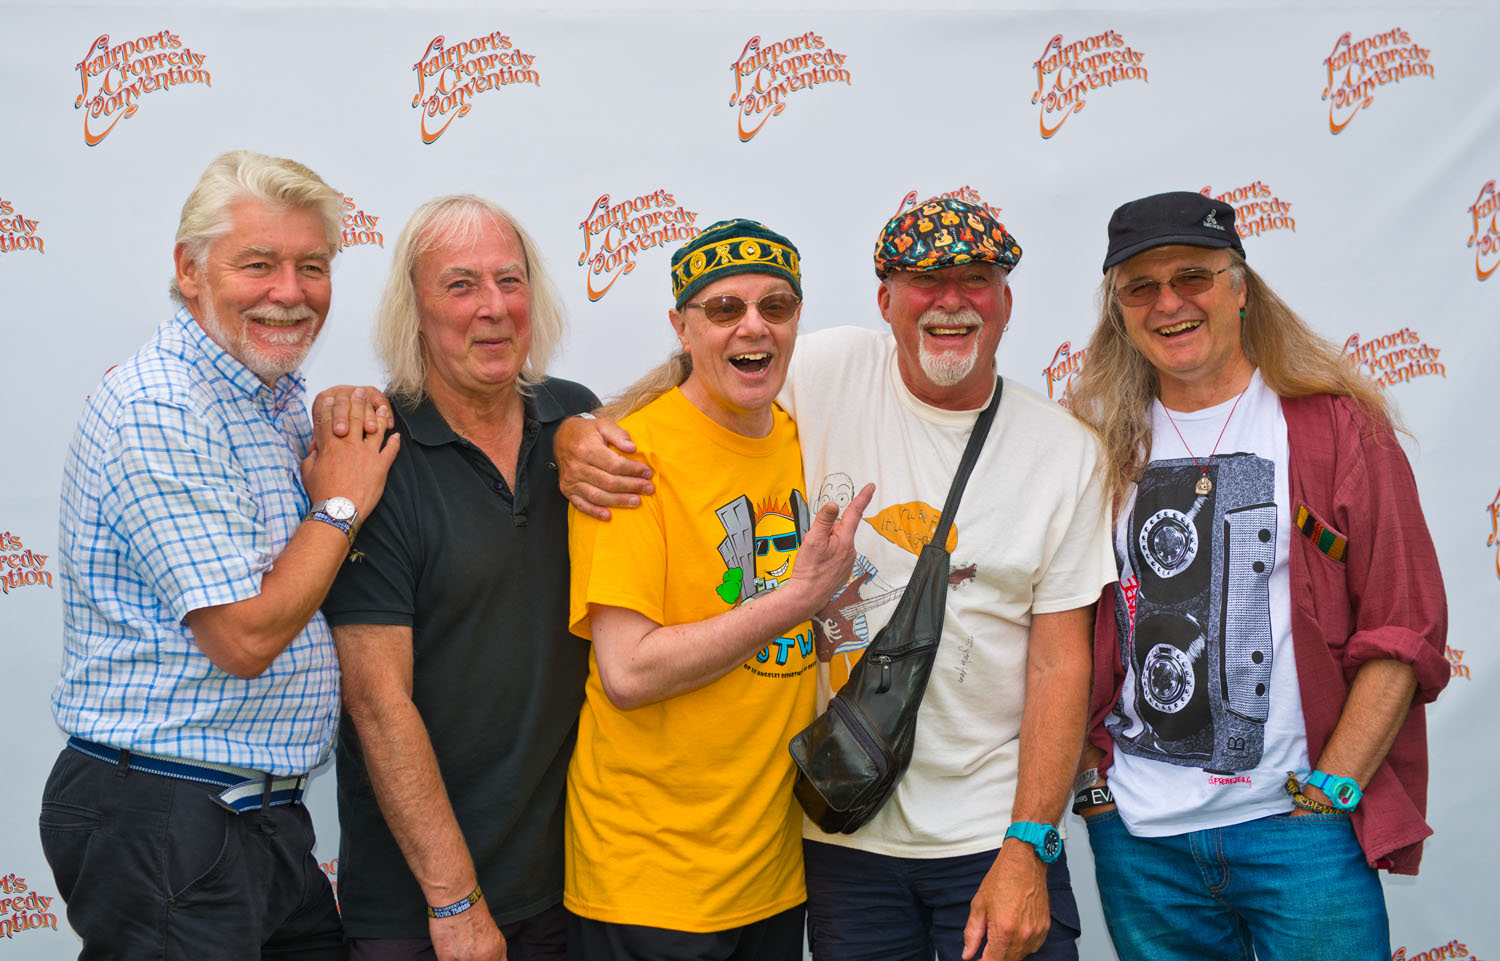 Fairports Cropredy Convention Festival 2016: Fairport Convention backstage prior to the start of the festival on the Thursday night.